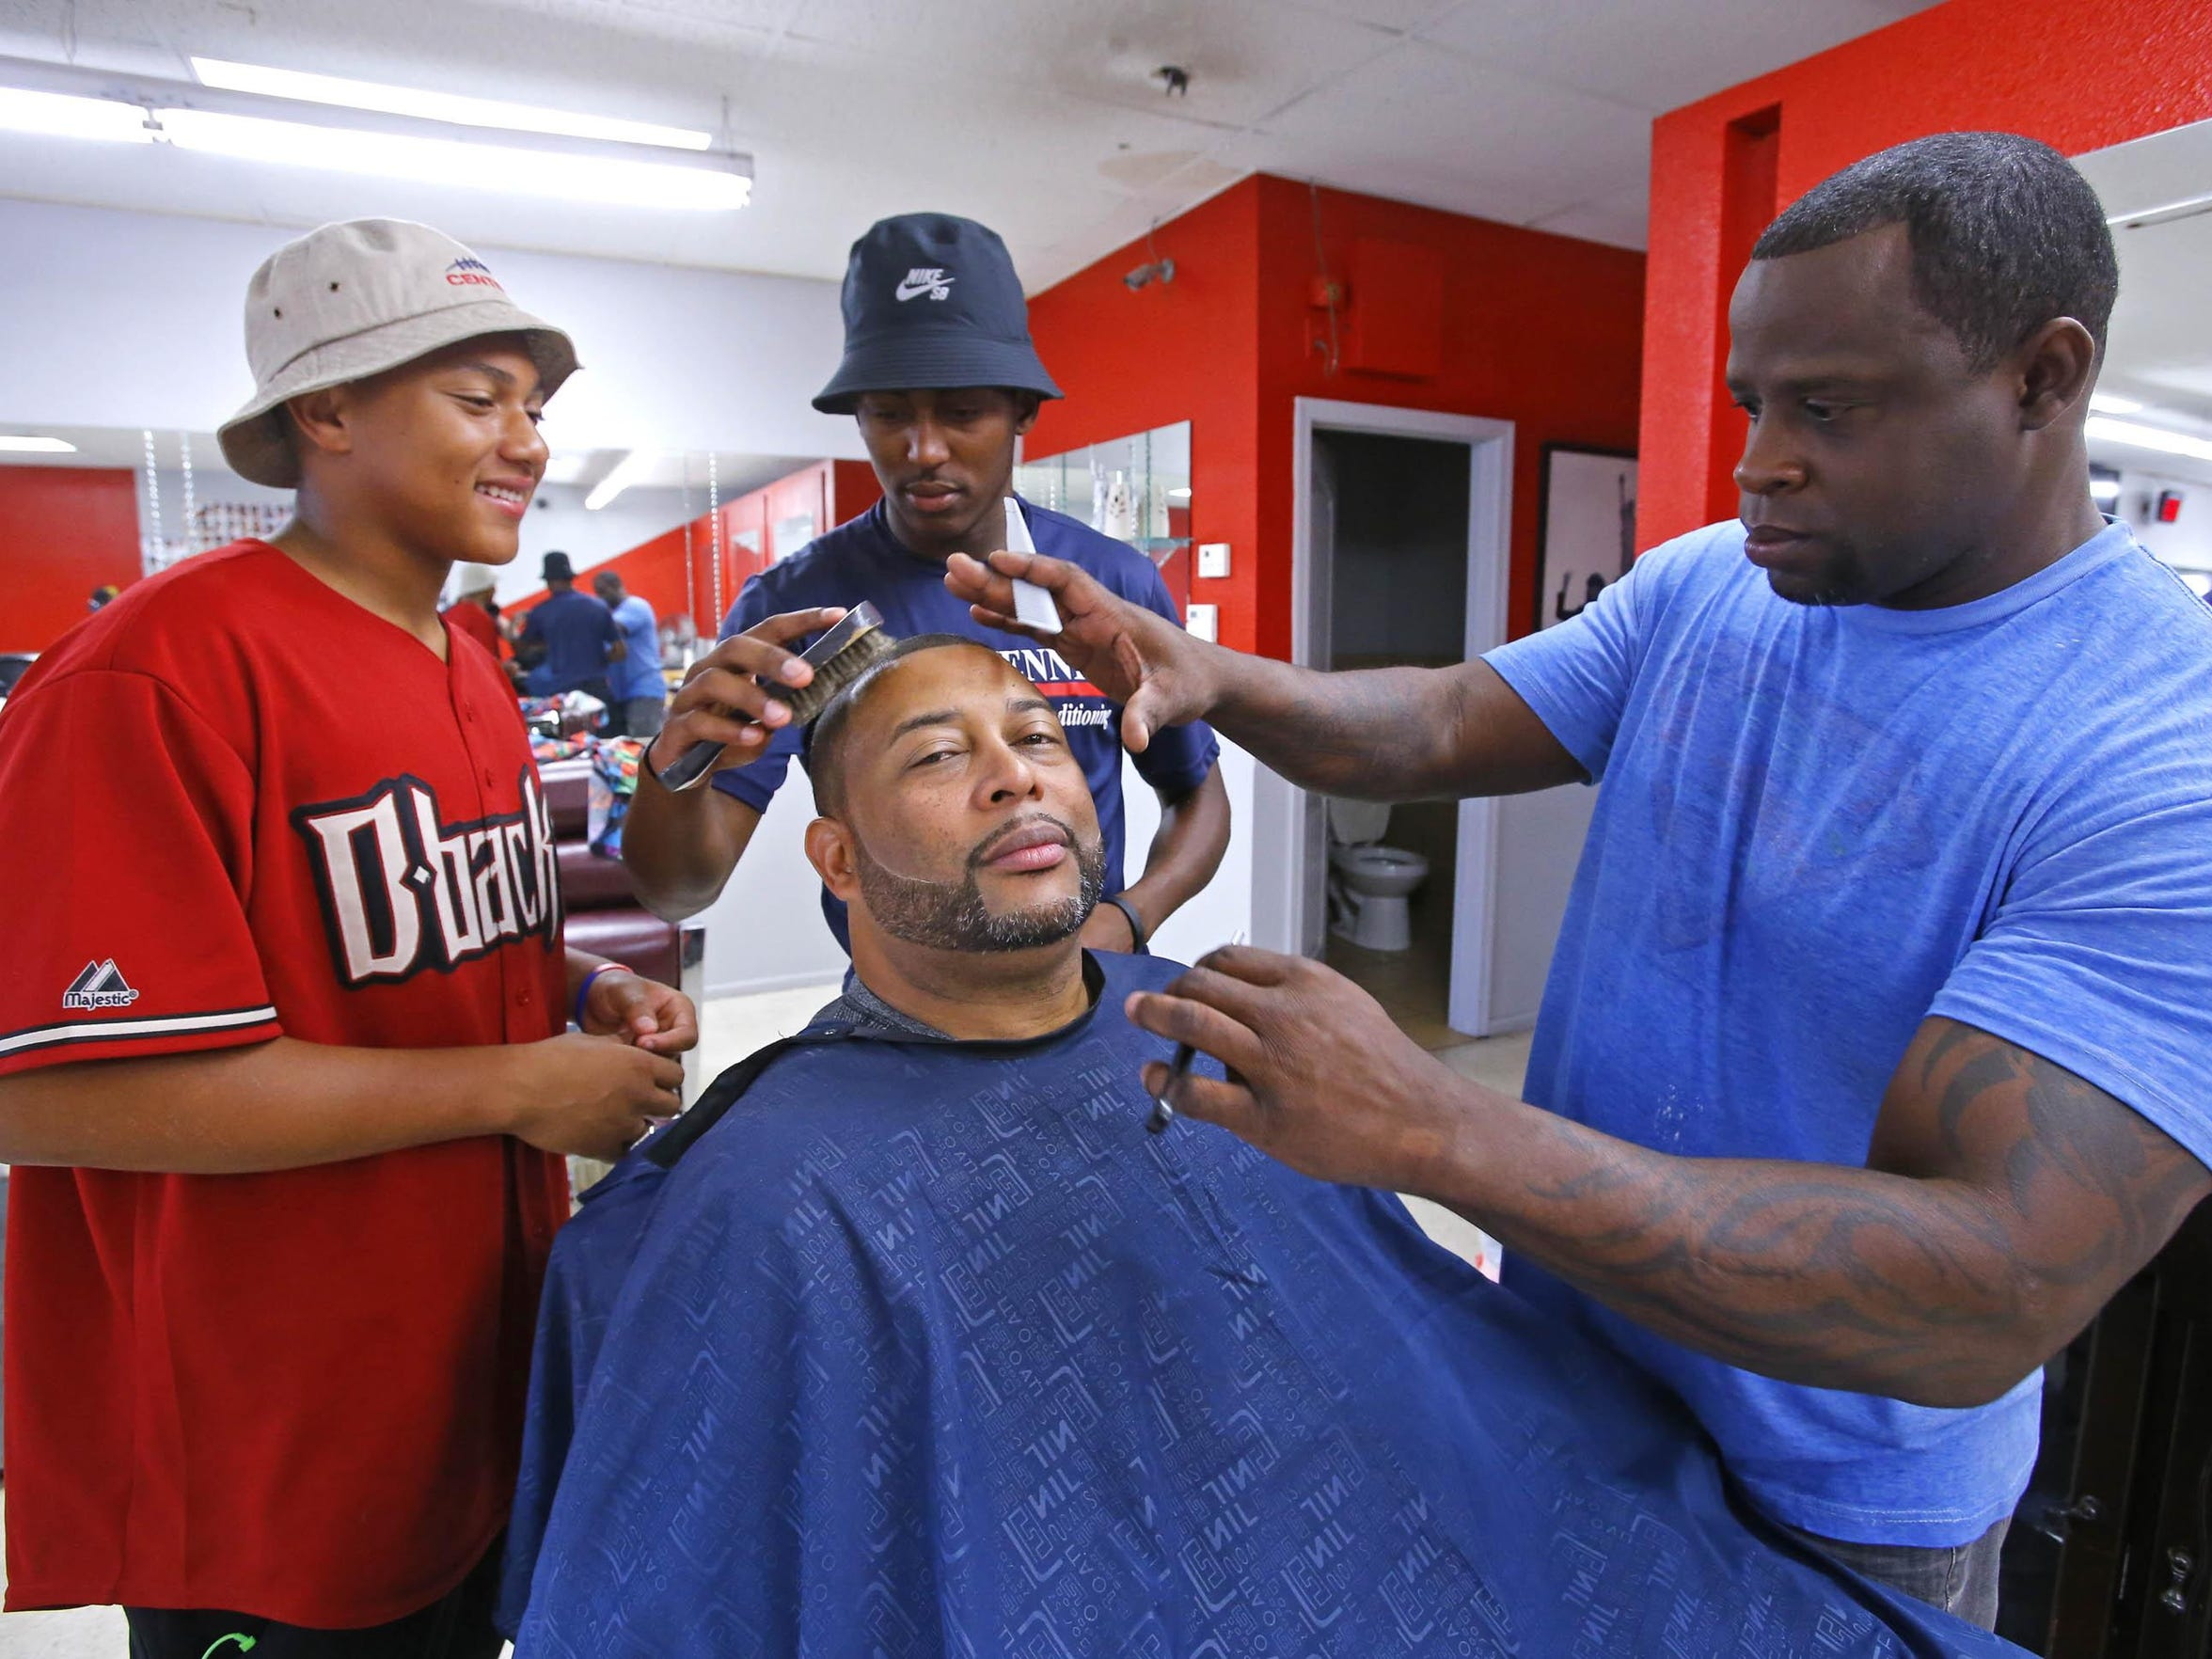 Getting a haircut from barber Kelvin Kimble is a family